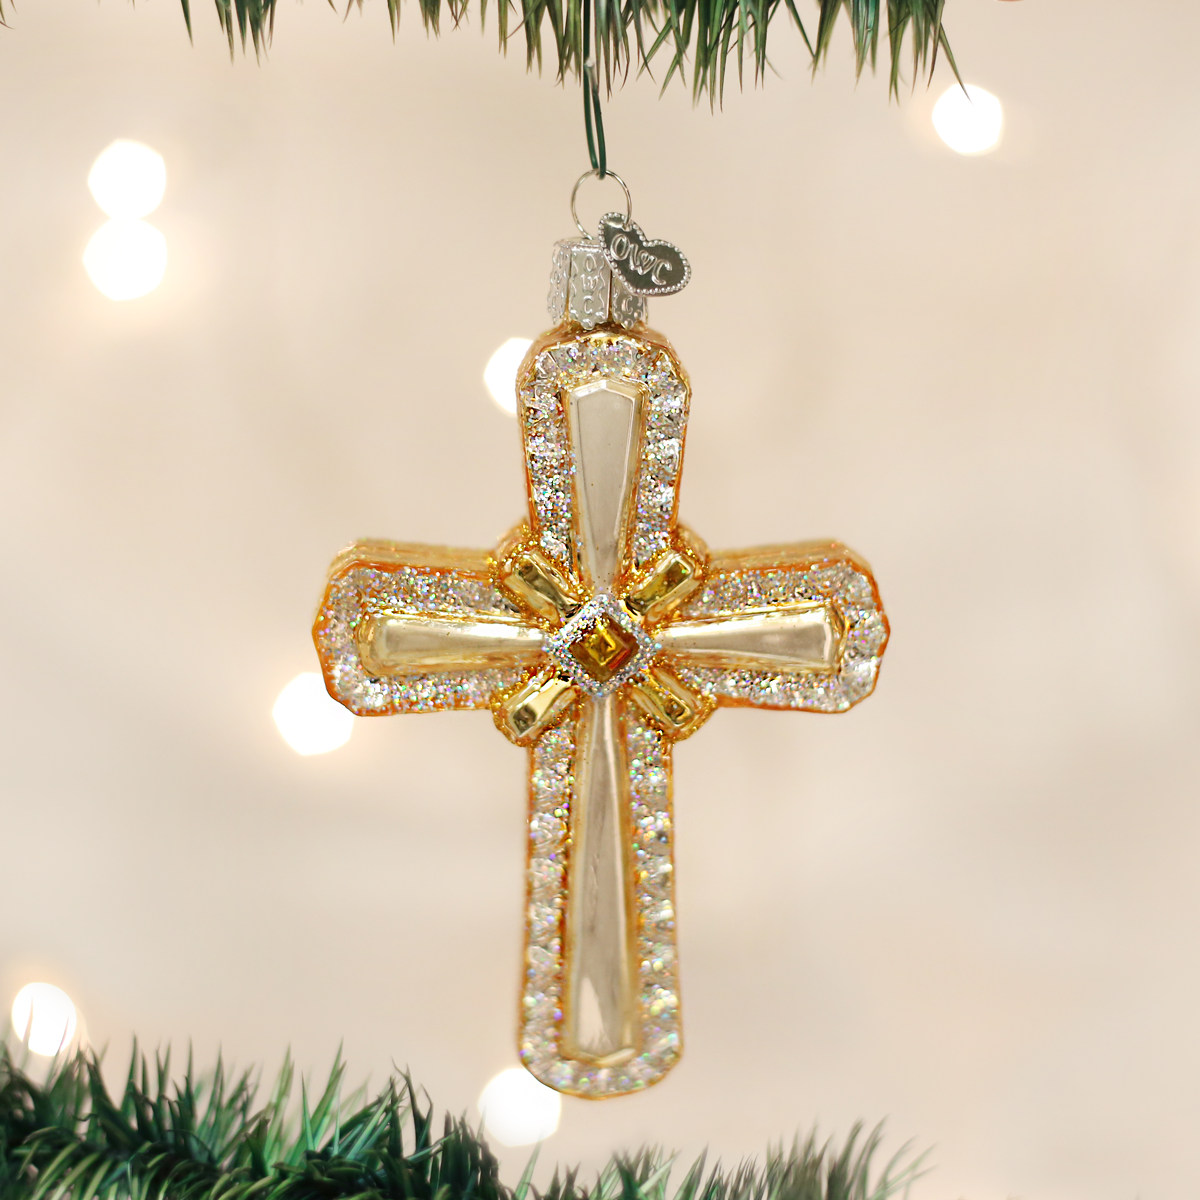 Old World Christmas OWC Holy Cross Ornament